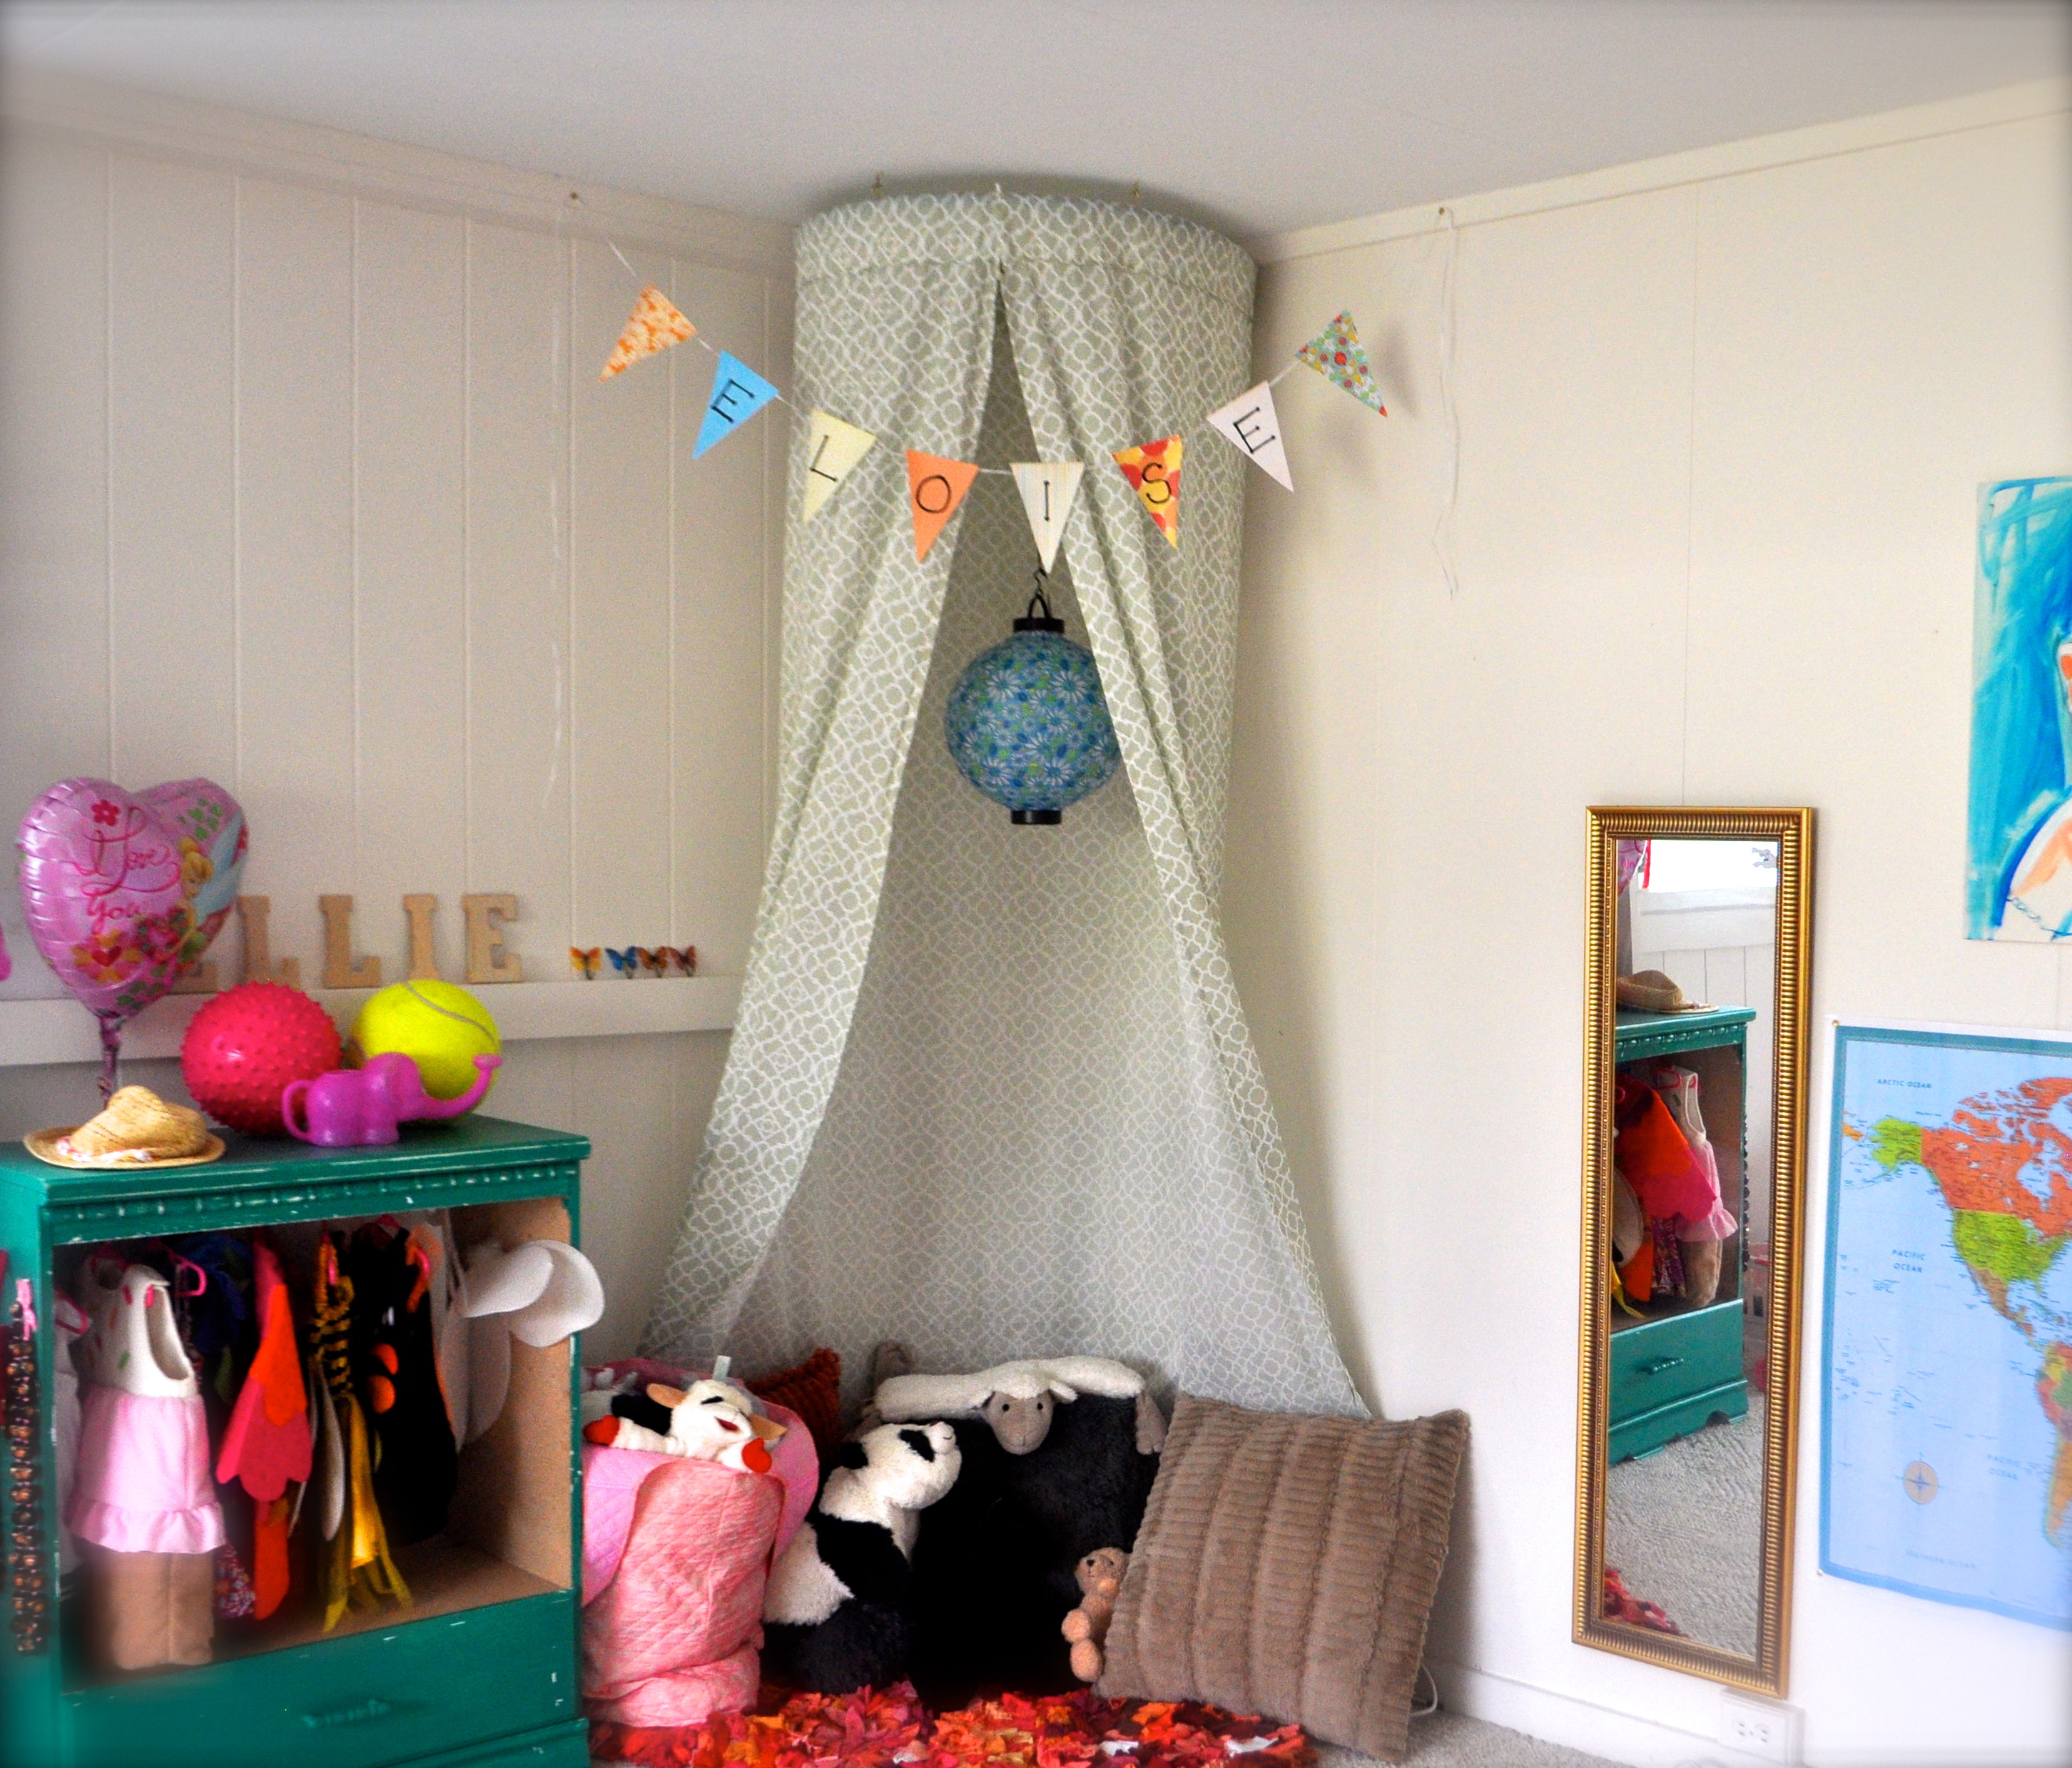 Best ideas about DIY Kids Canopy . Save or Pin 5 minute no sew Kid's Canopy Now.